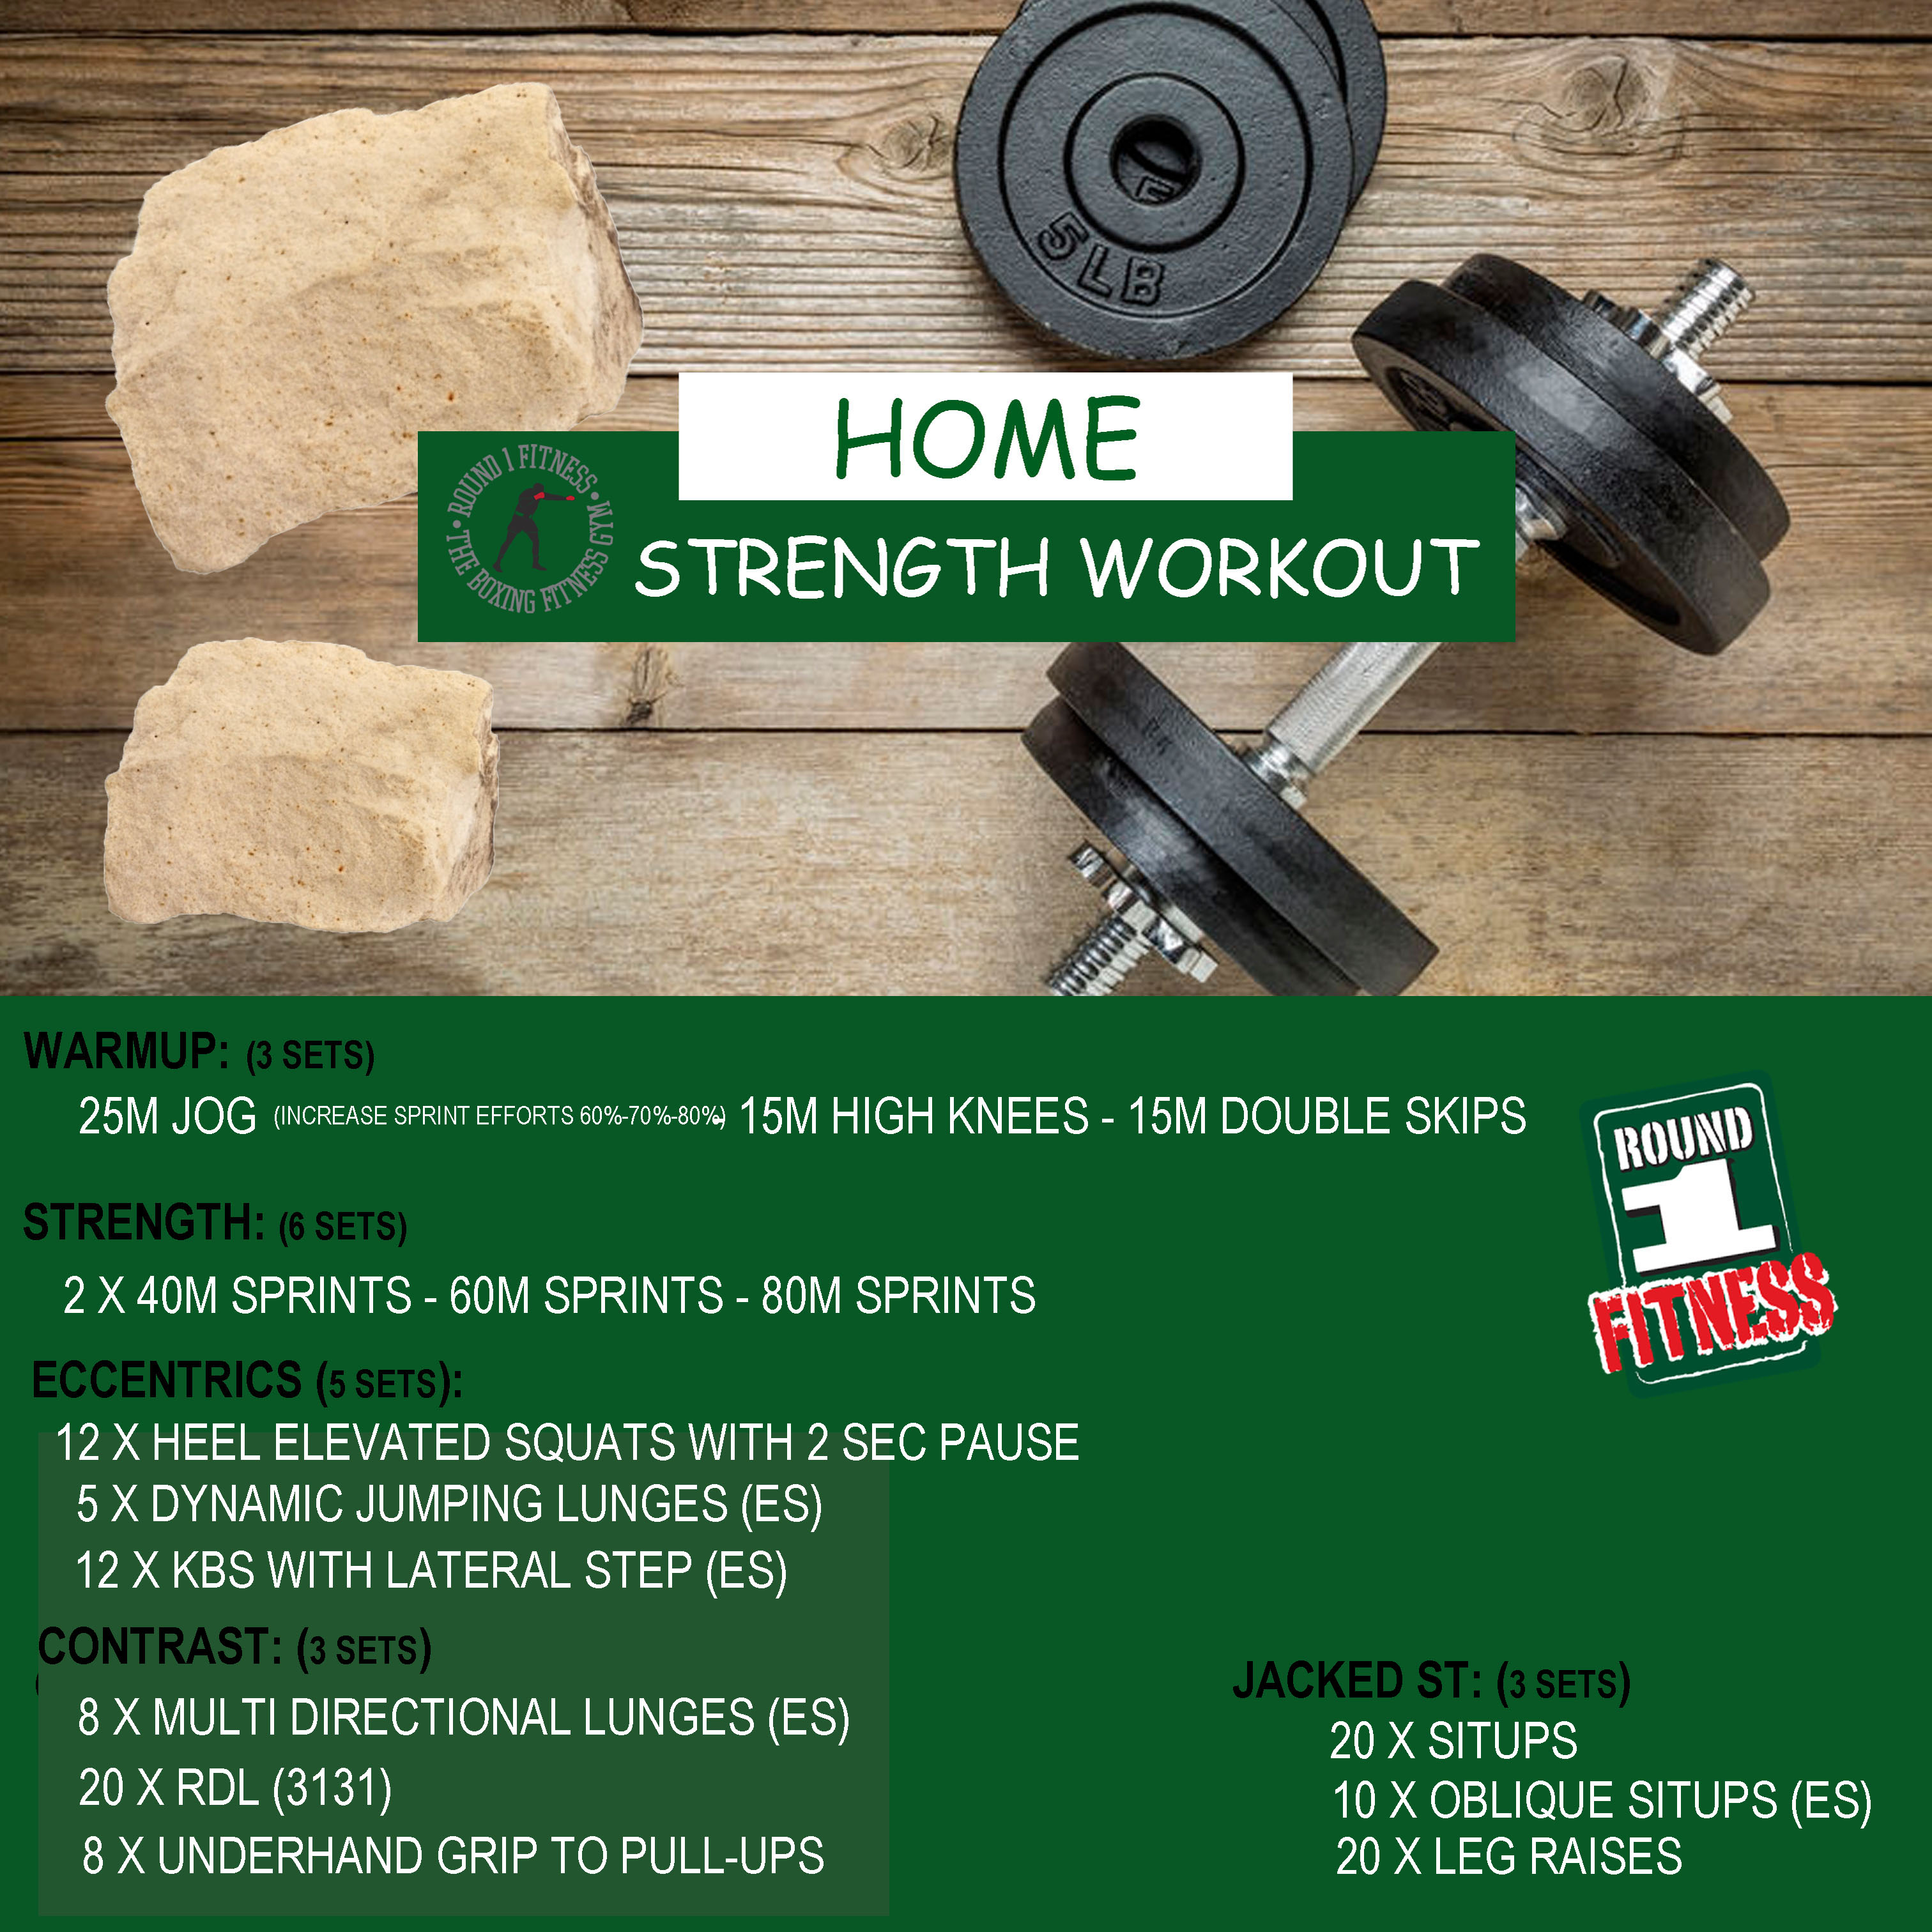 COVID Lockdown#3 – Round 1 @ Home Strength – Workout 5, April 29th 2021